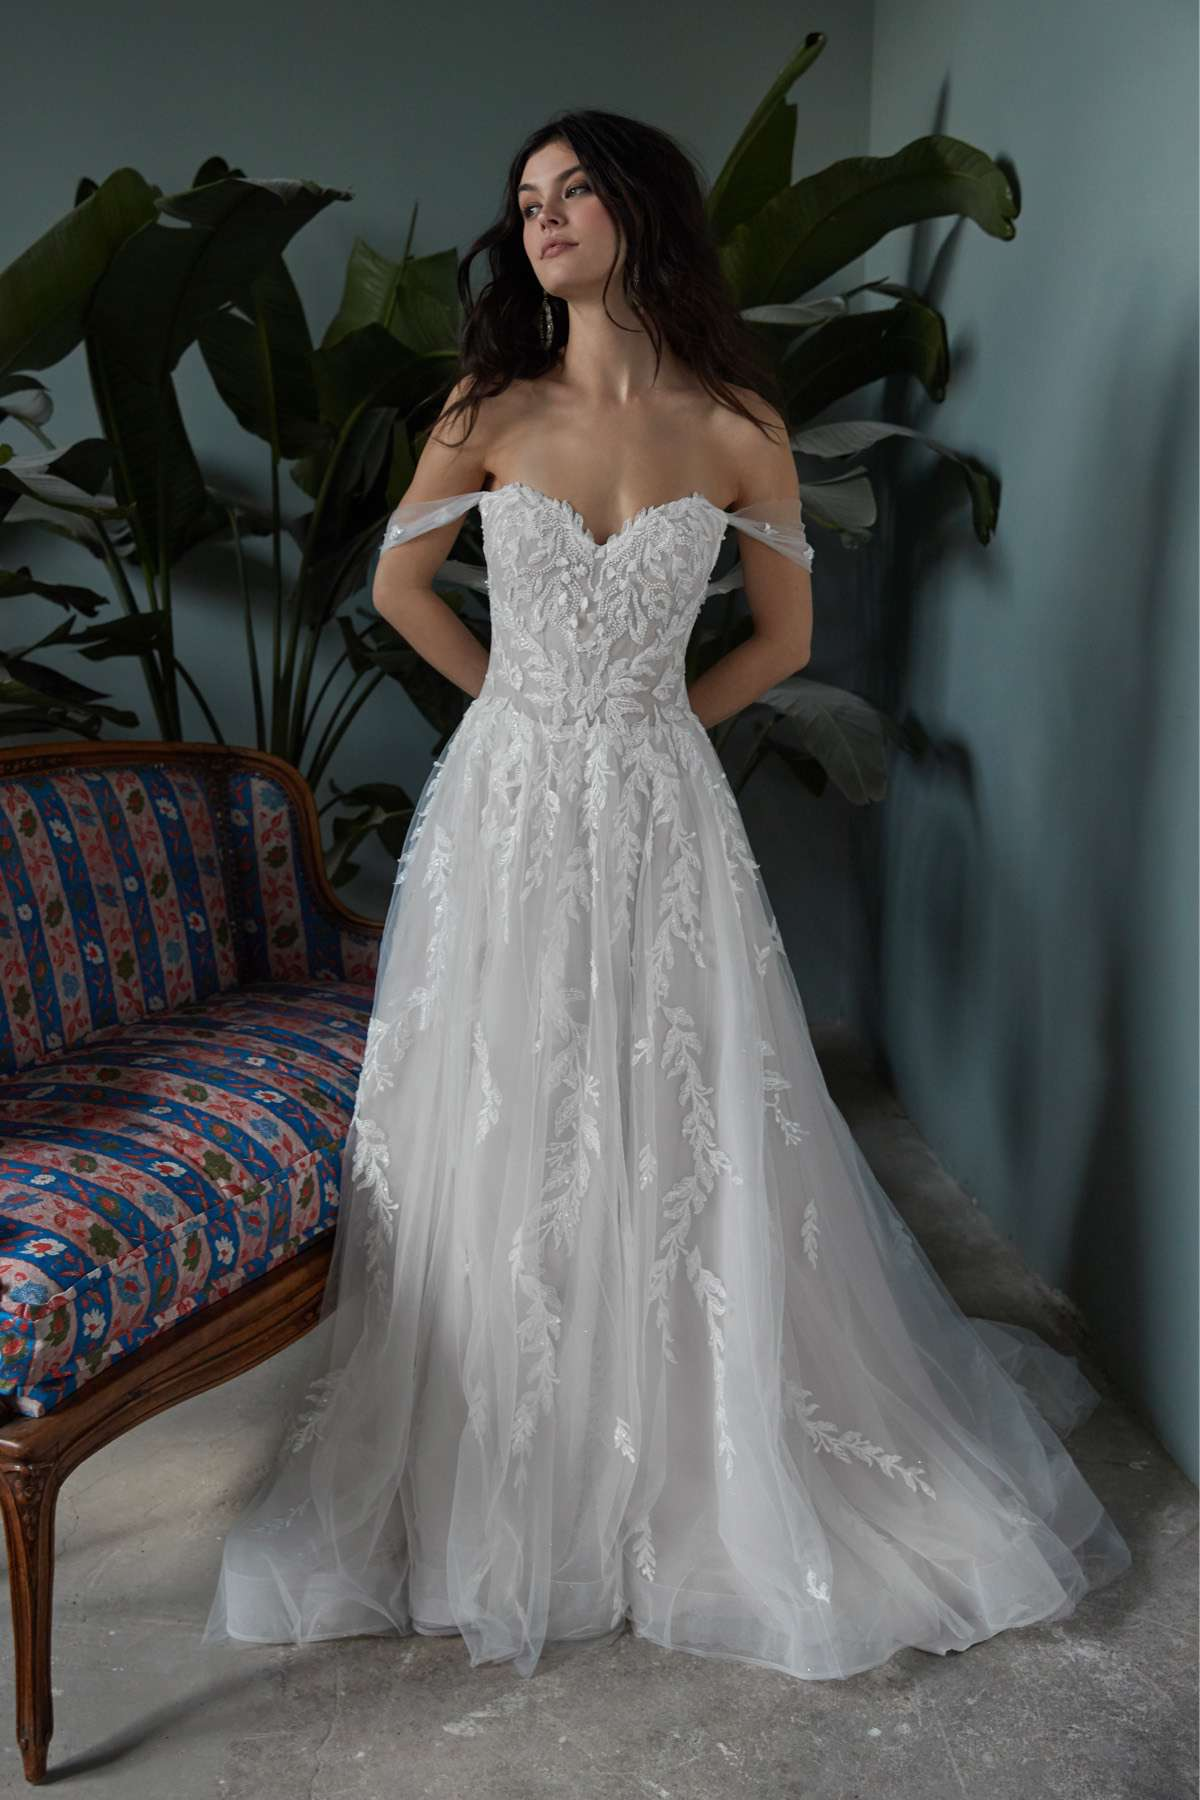 Model in off-the-shoulder sweetheart ballgown with 3D floral embroidery